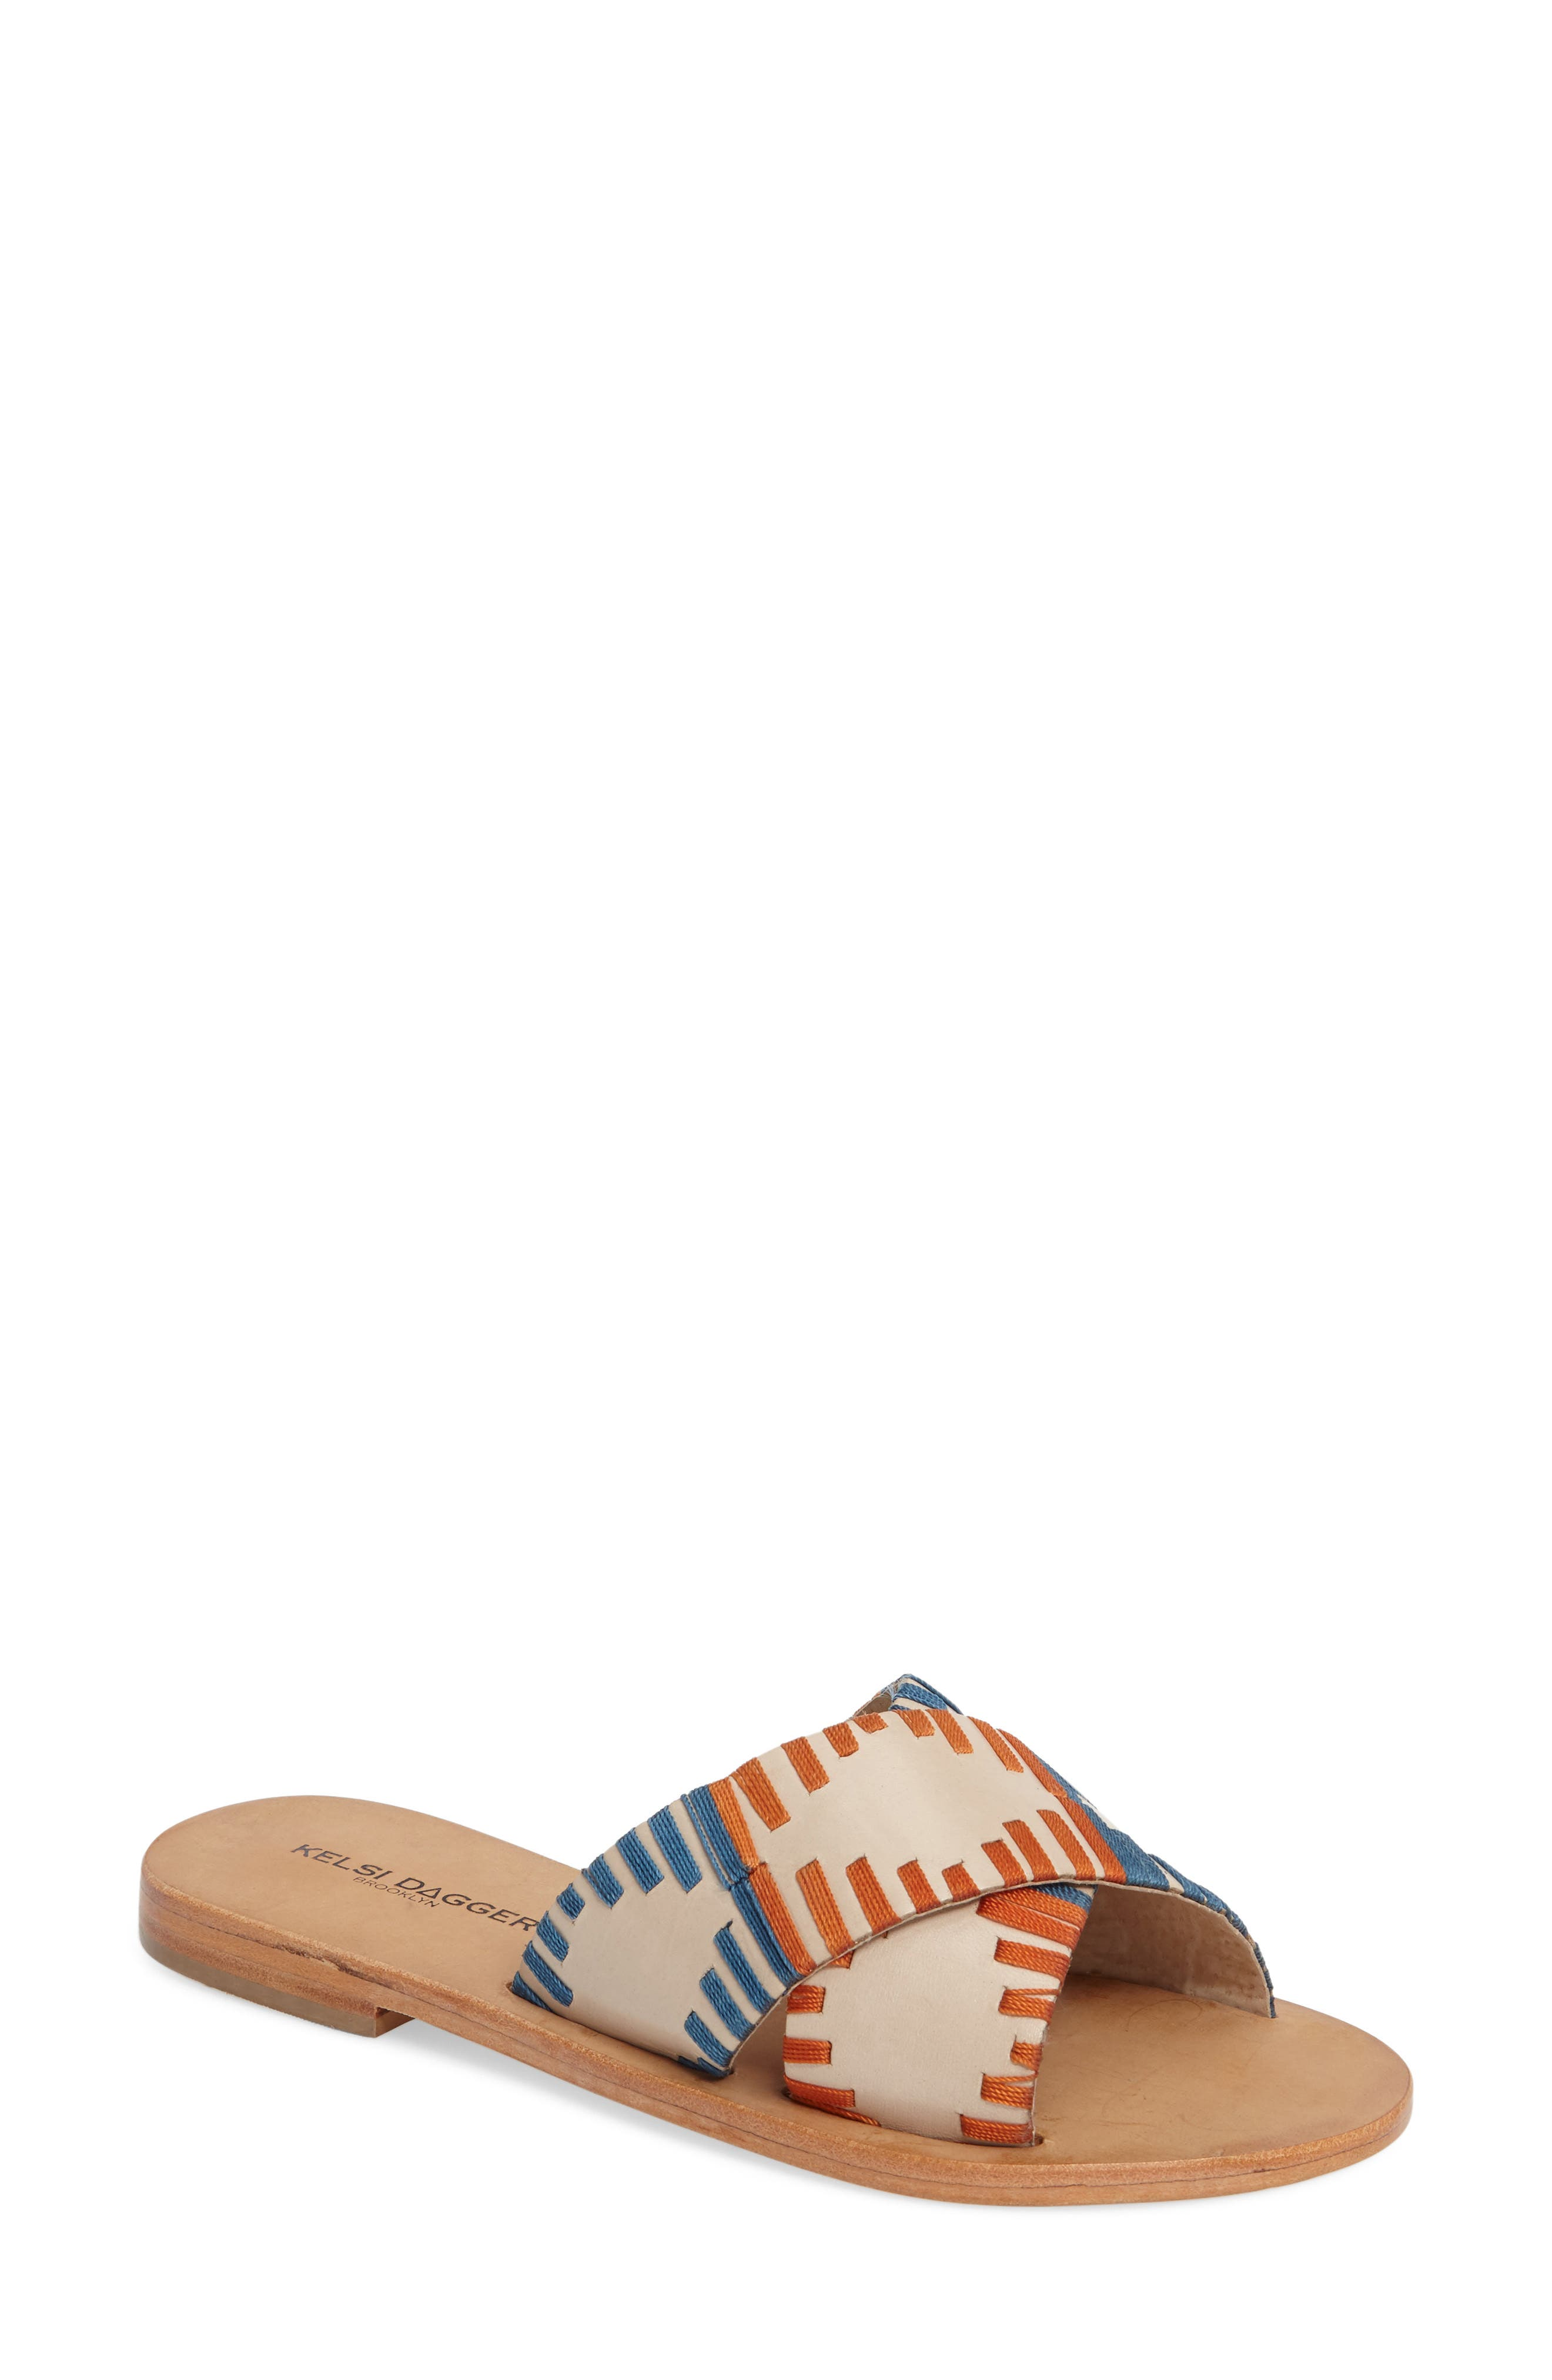 Kelsi Dagger Brooklyn Crown Sandal (Women)